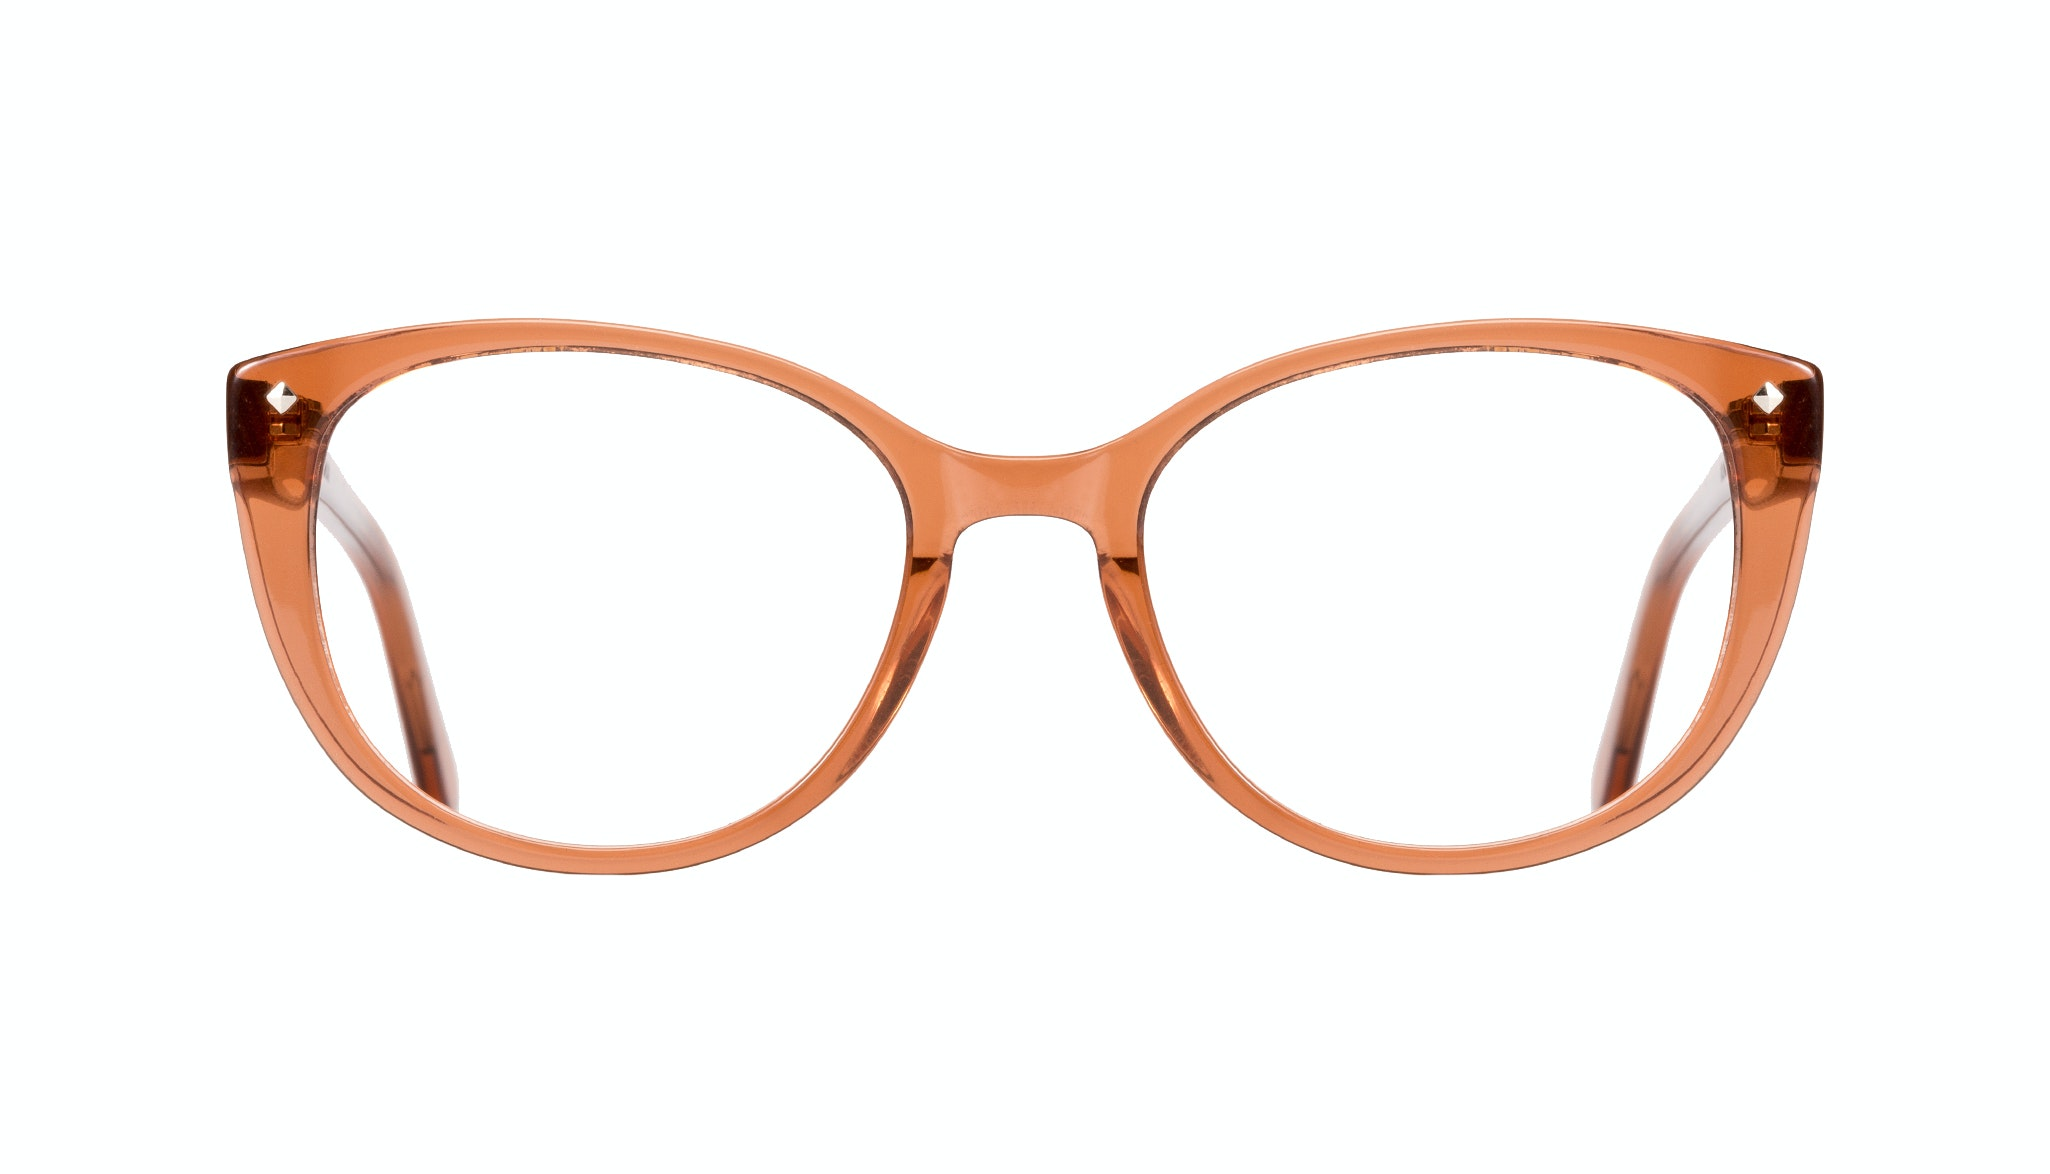 Affordable Fashion Glasses Cat Eye Eyeglasses Women Mist umber